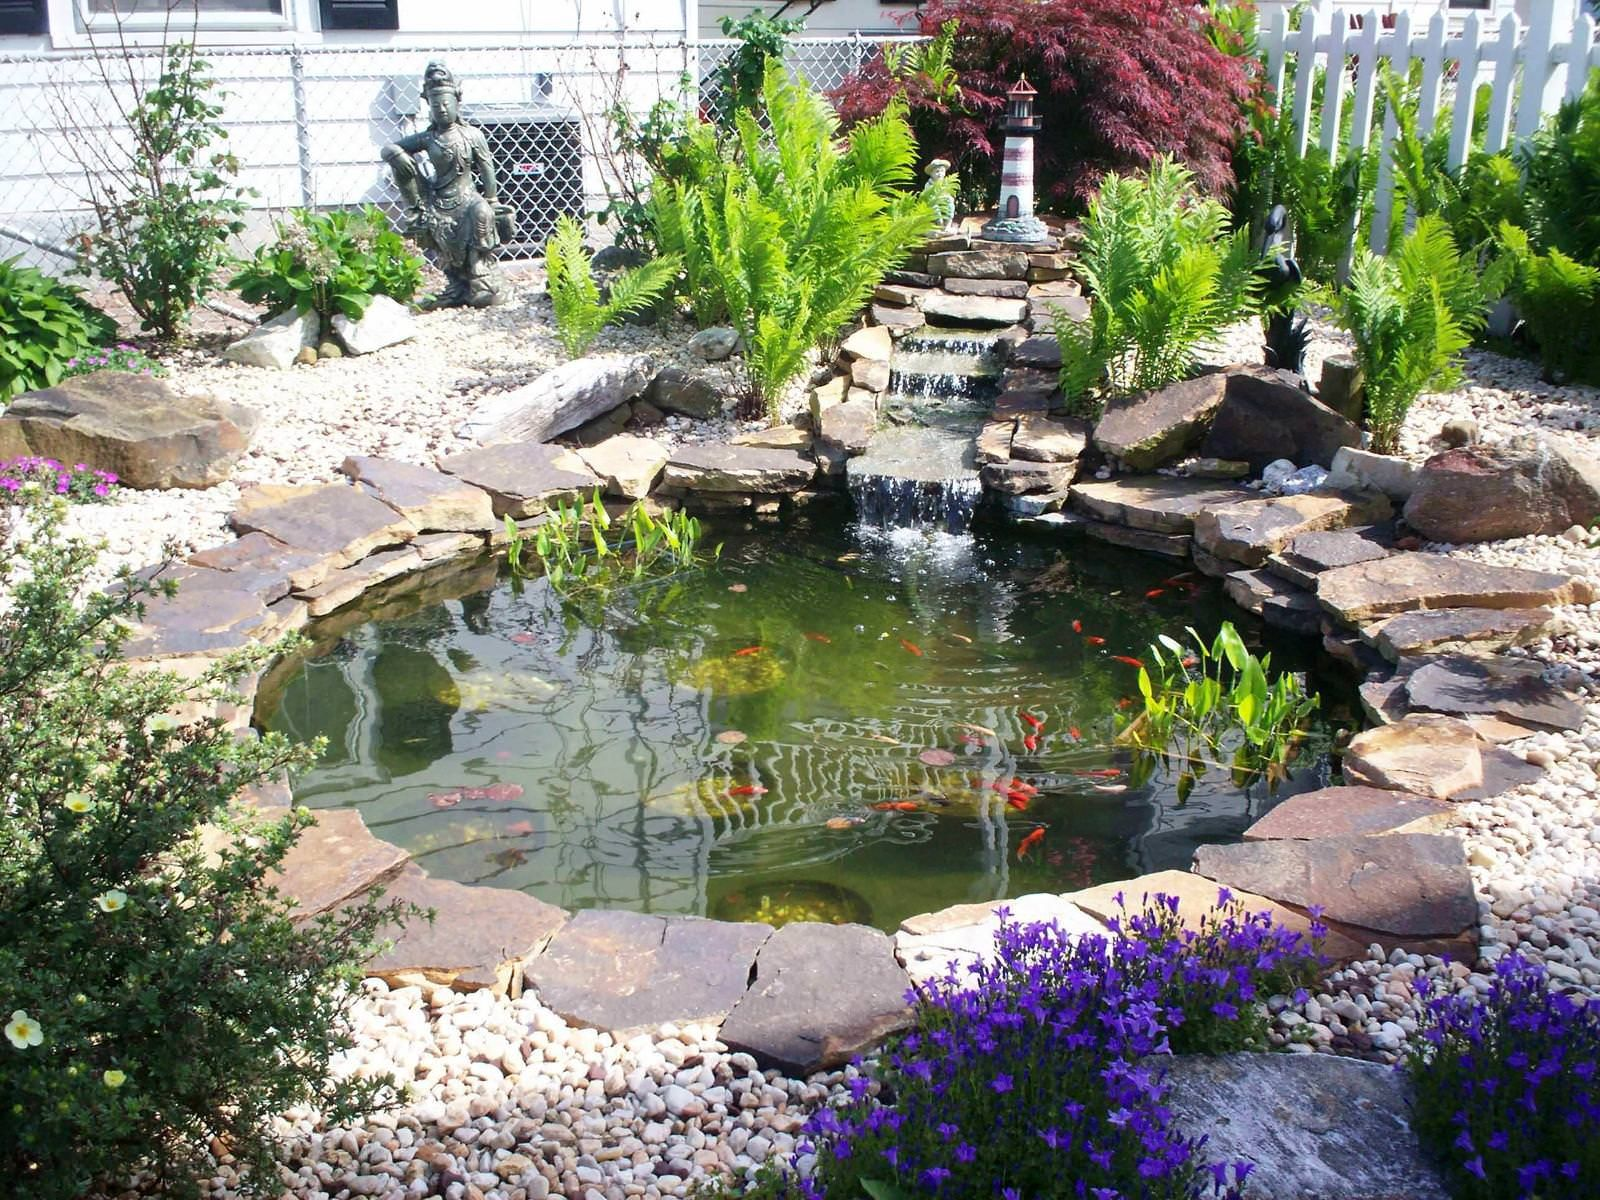 Small garden or backyard aquarium ideas practic ideas for Fish pond design